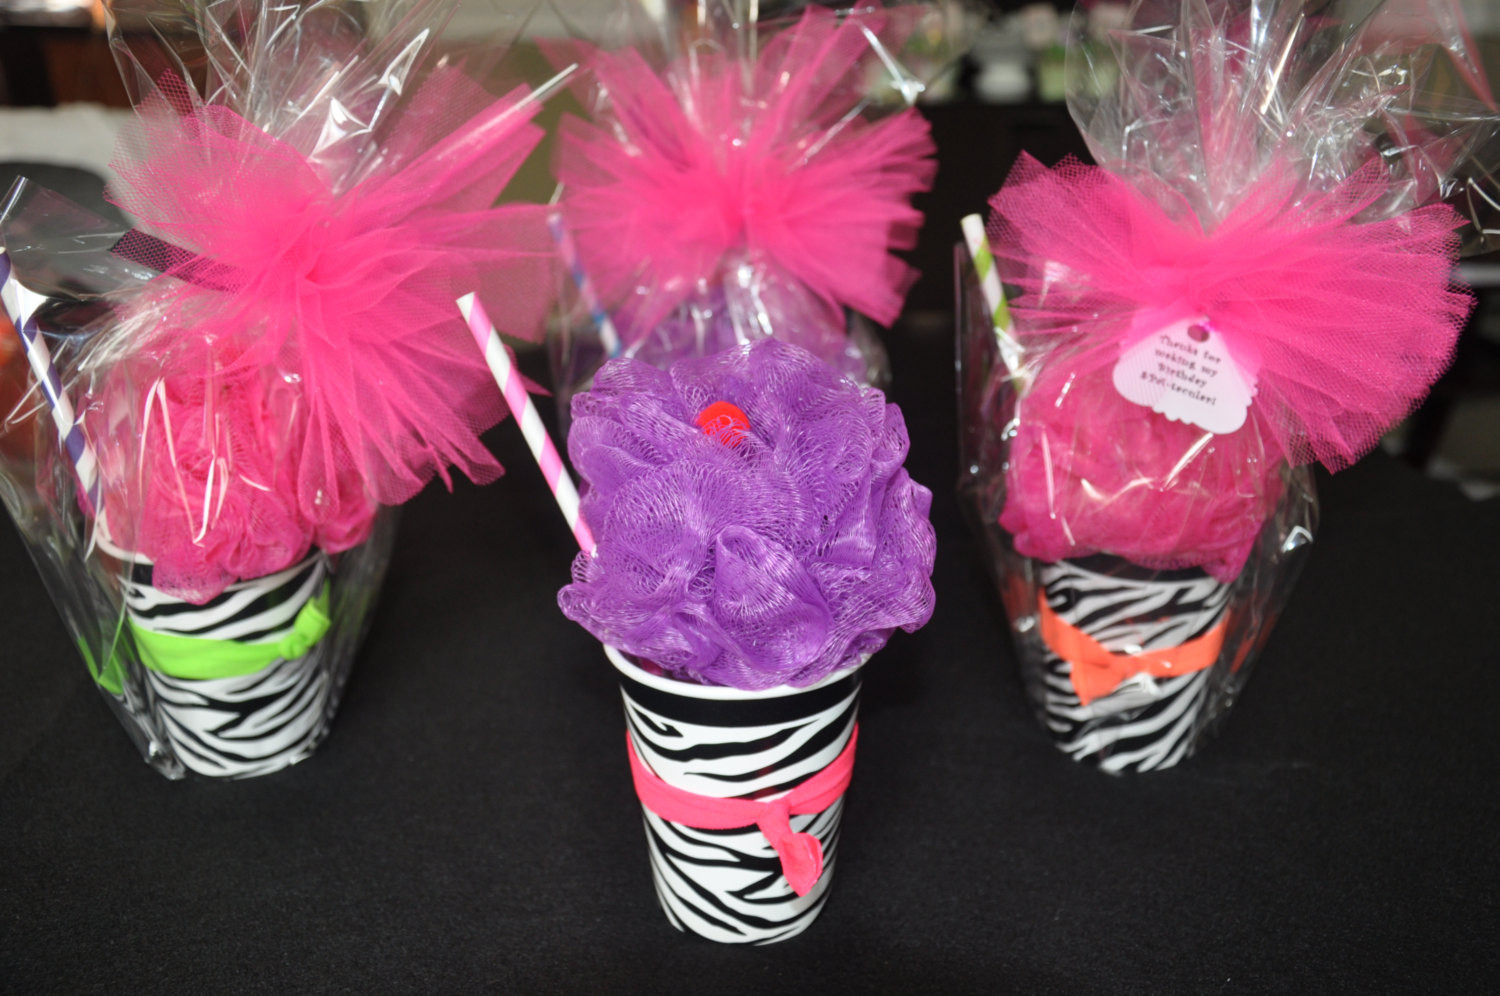 Girls Birthday Party Favors  Girls Spa Party Favor Bath Puff Smoothie filled with Nail